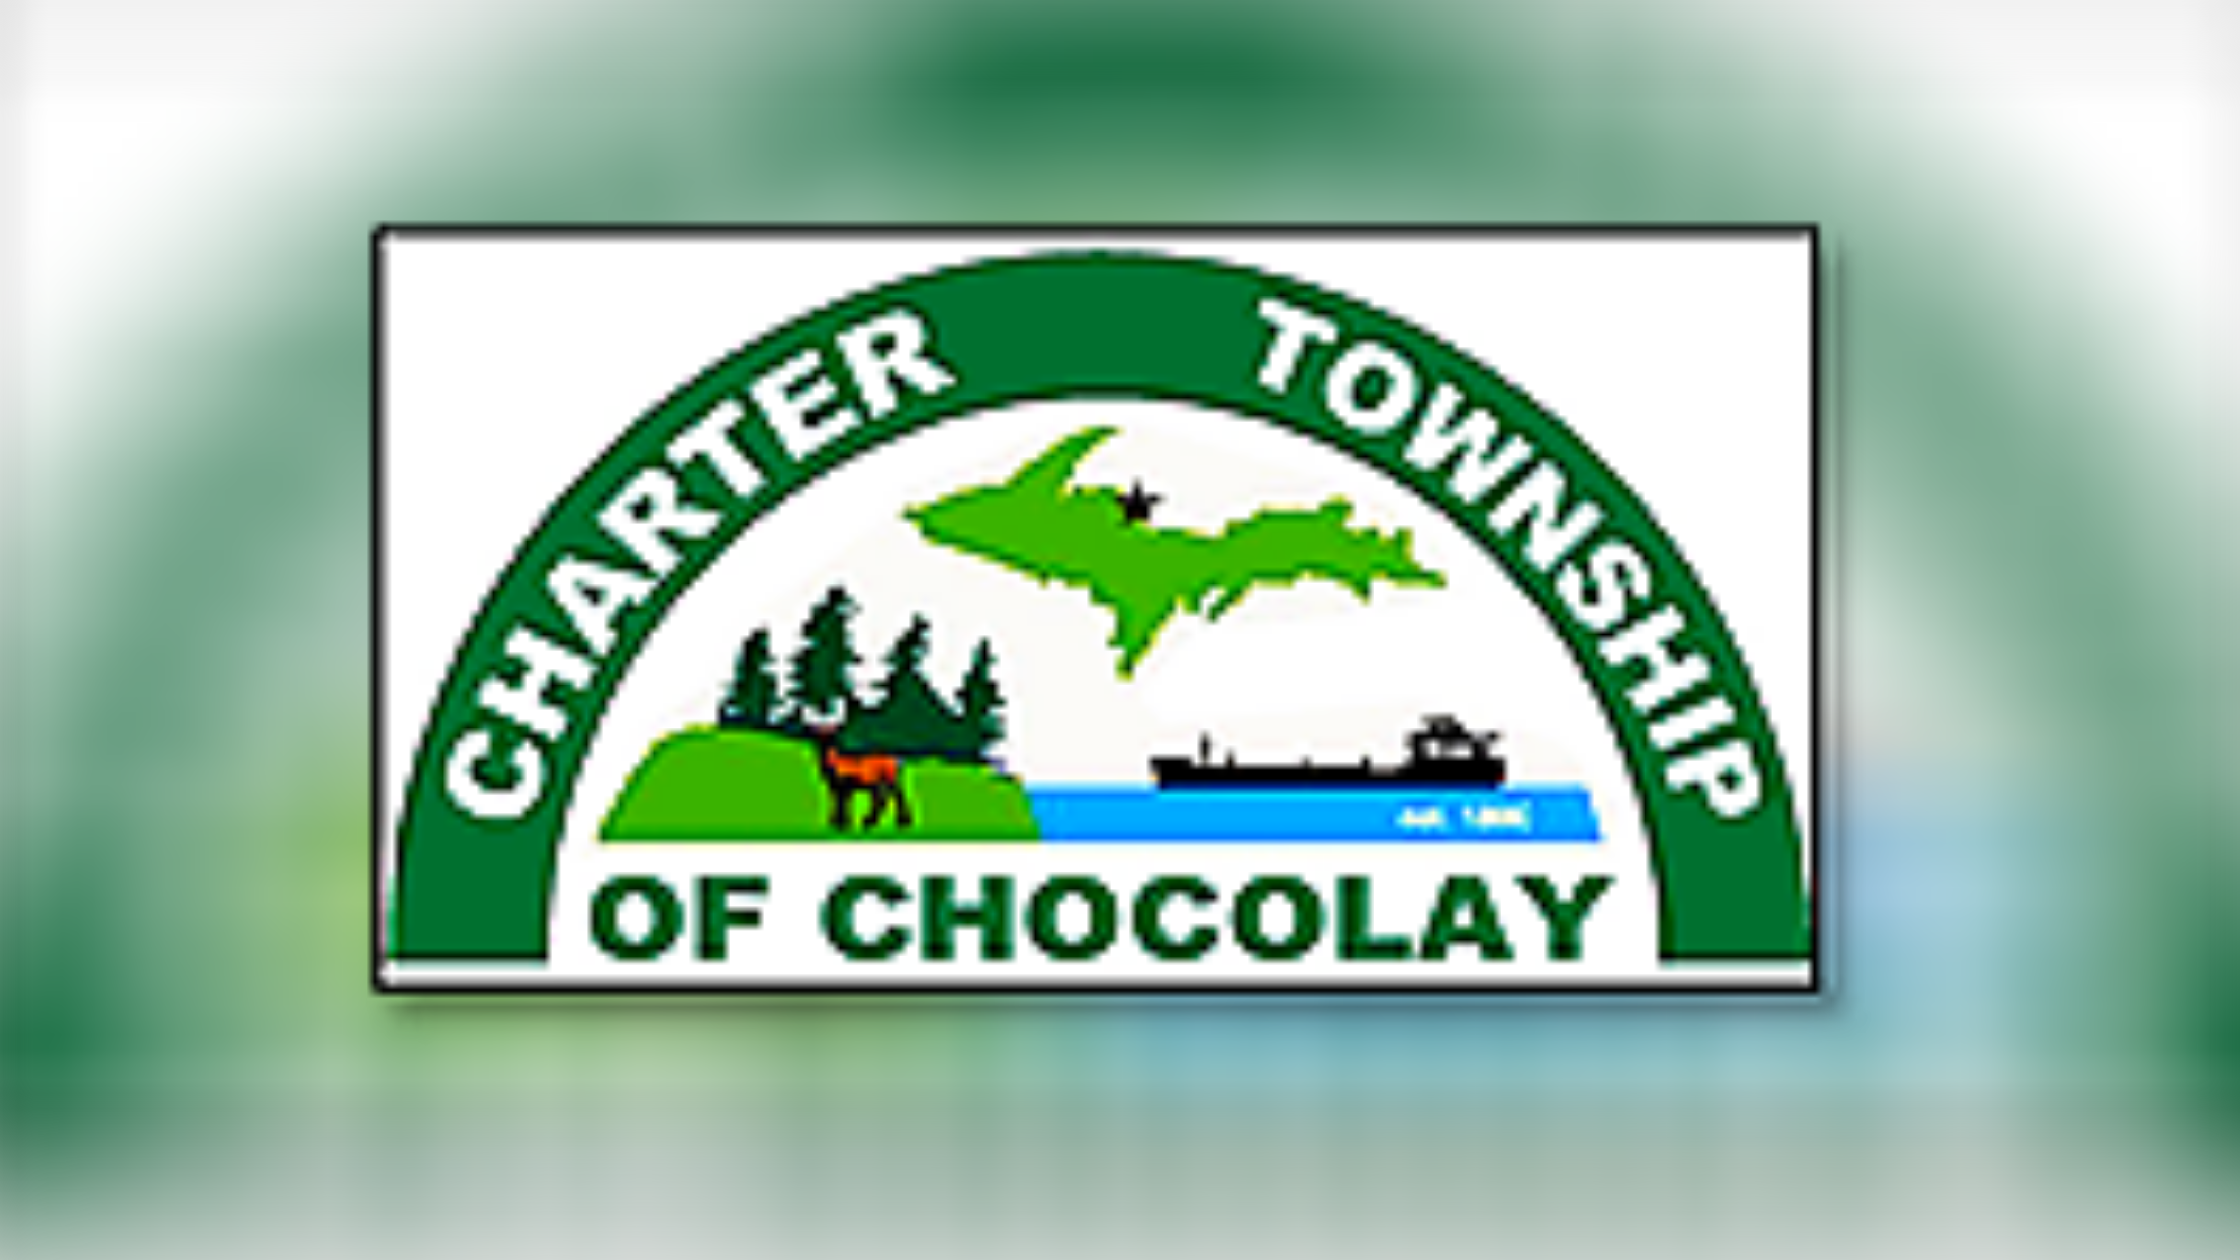 Chocolay Township